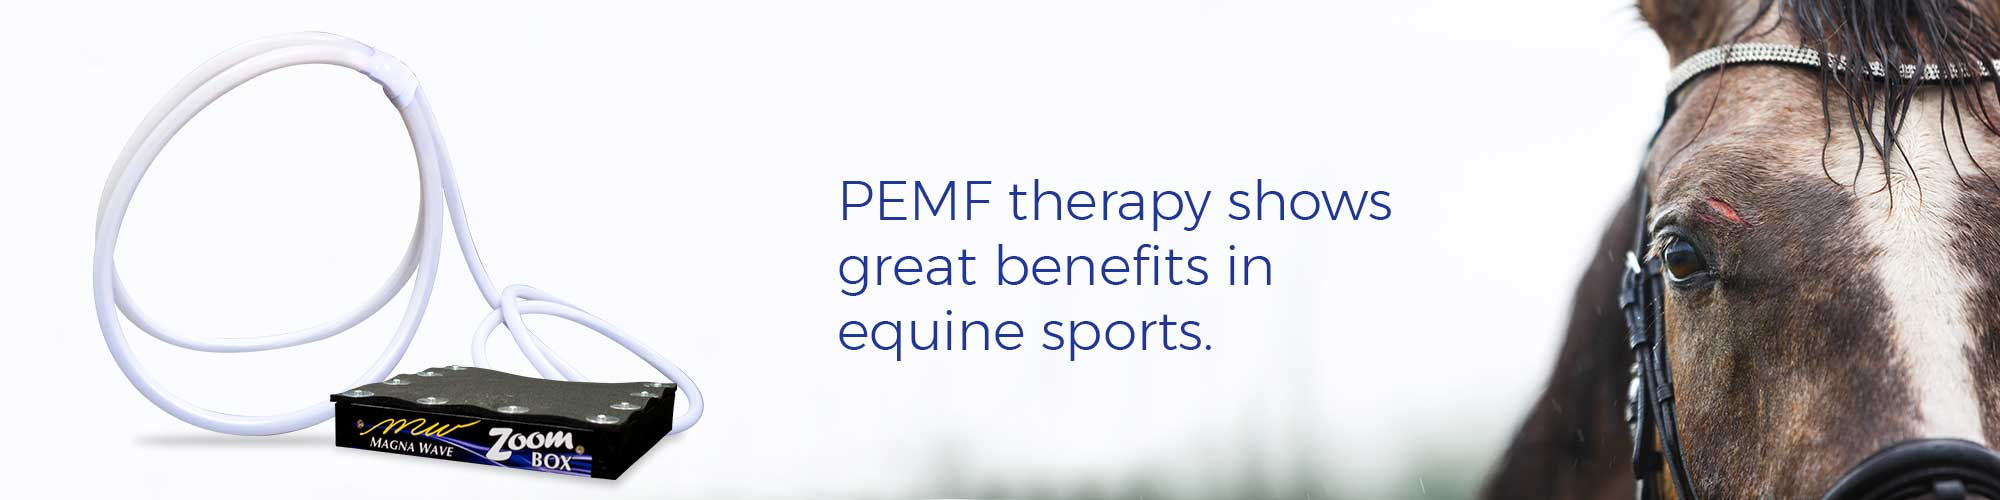 PEMF therapy shows great benefits in equine sports.